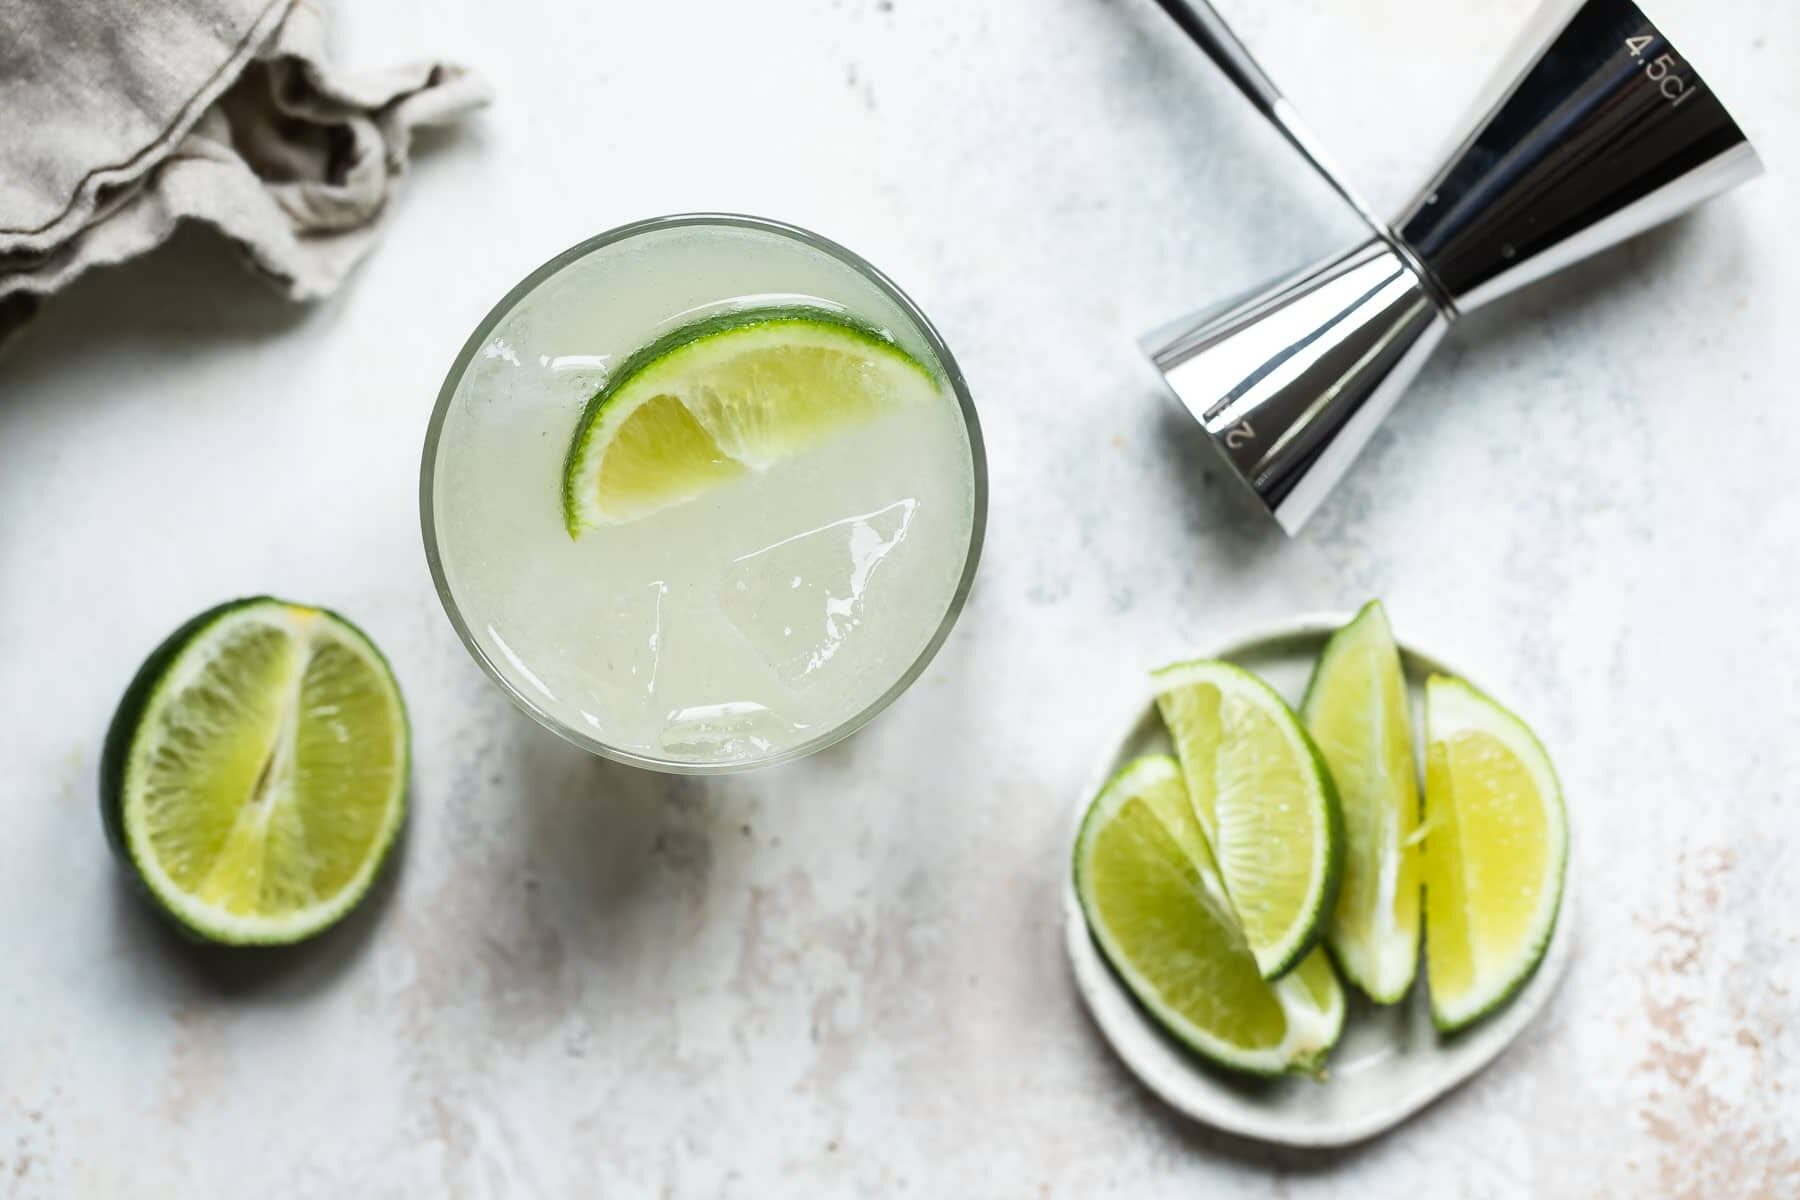 A Paloma cocktail in a rocks glass garnished with lime.